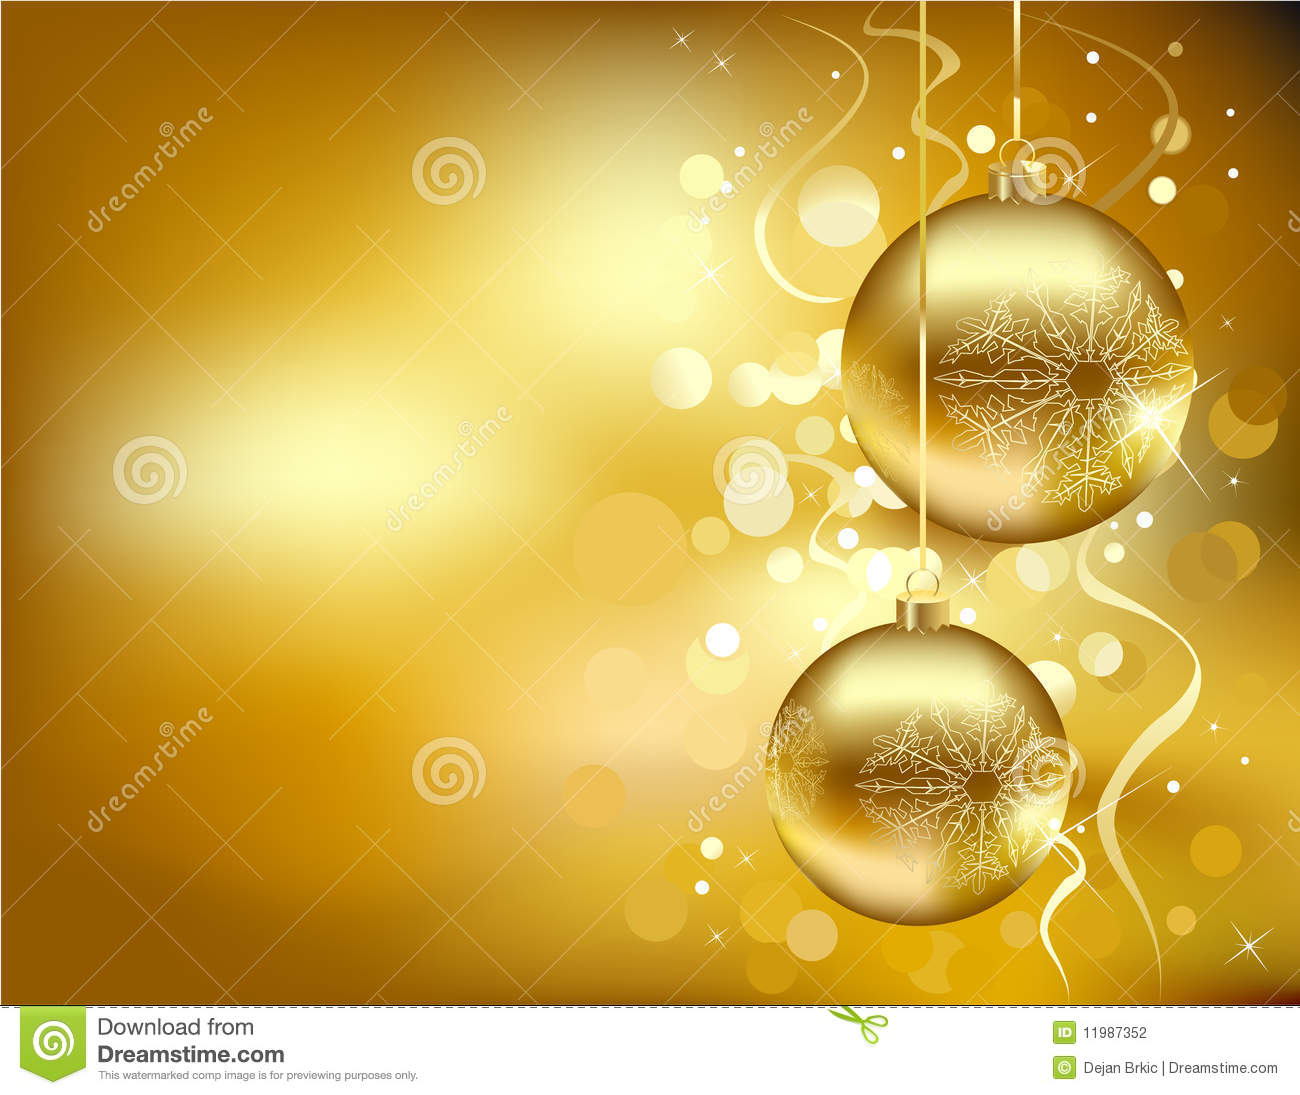 golden christmas decorations illustration 11987352 megapixl - Yellow Christmas Decorations